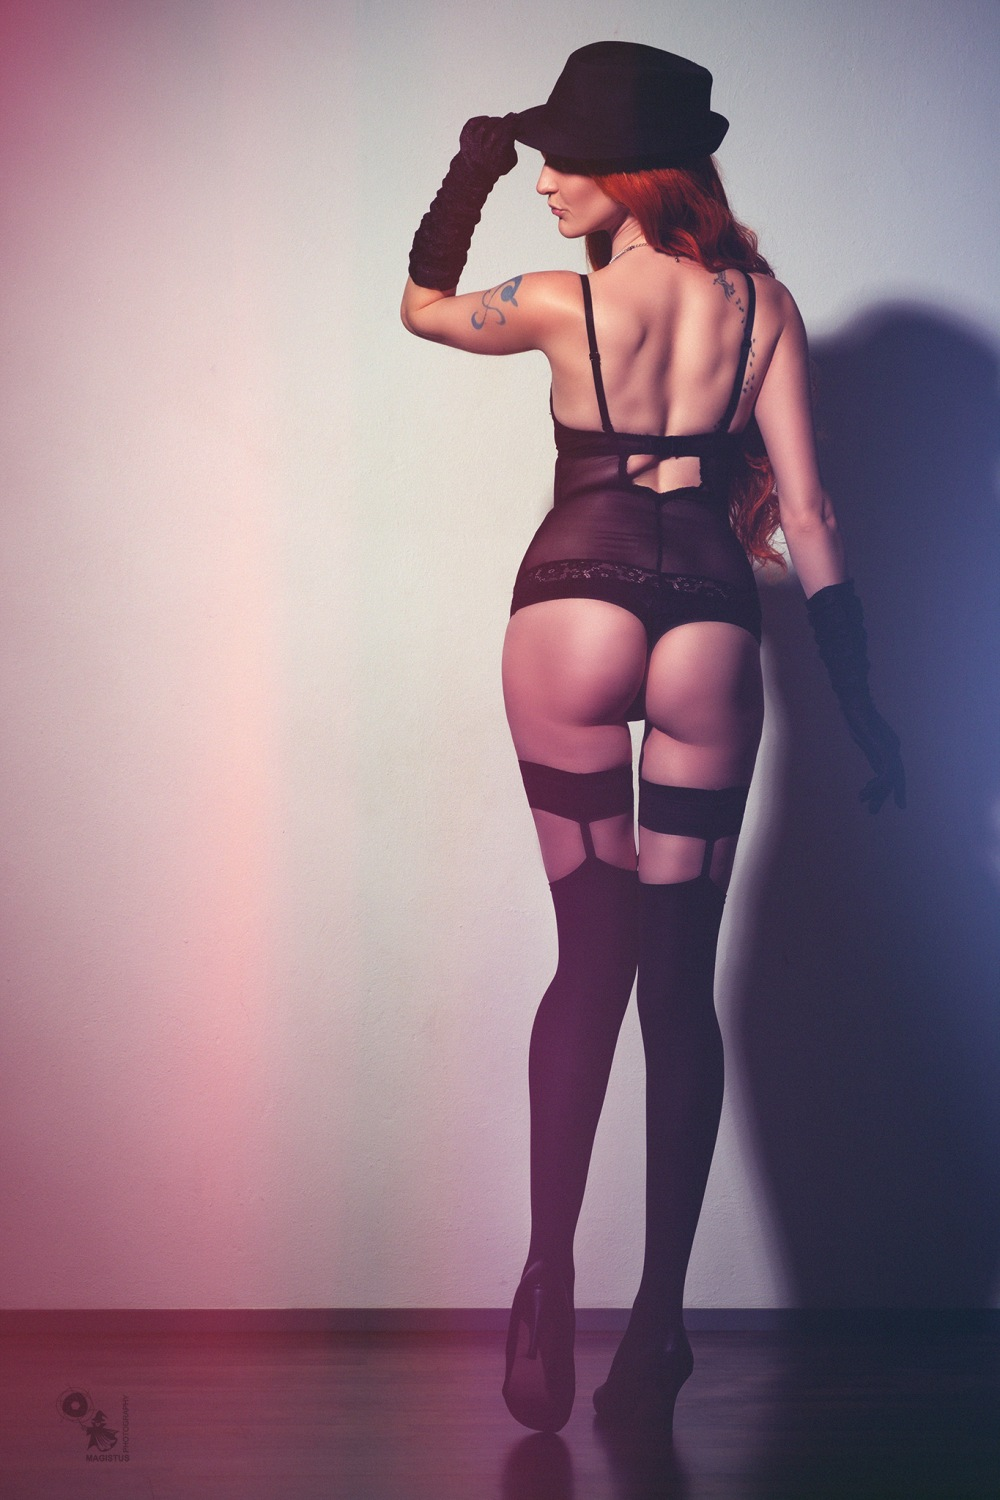 Lingerie Booty - super sexy girl posing in black lingerie showing her fantastic booty - © by Magistus